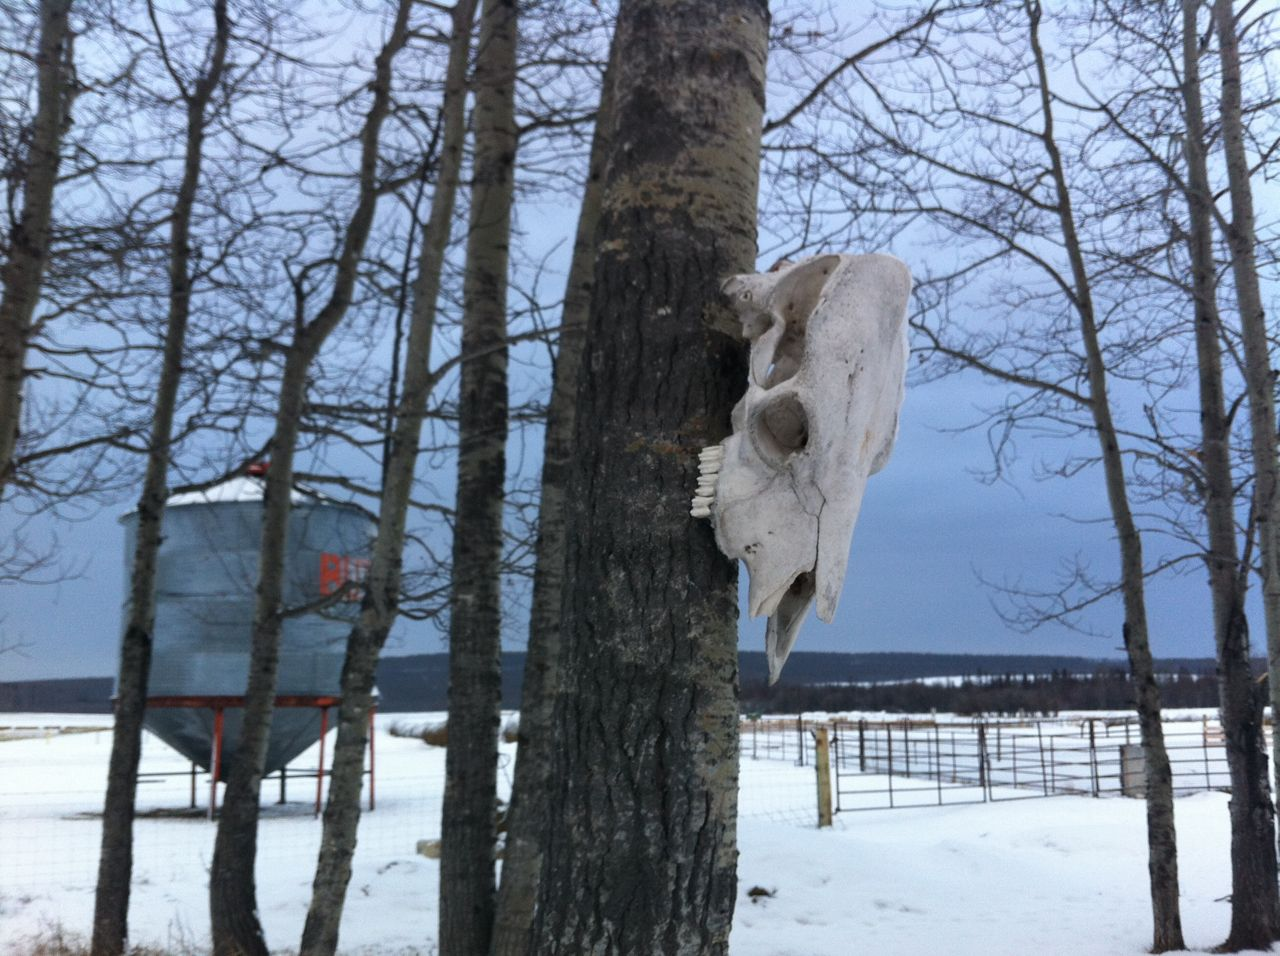 A picture of a tree and a cattle skull on the Crichton farm.